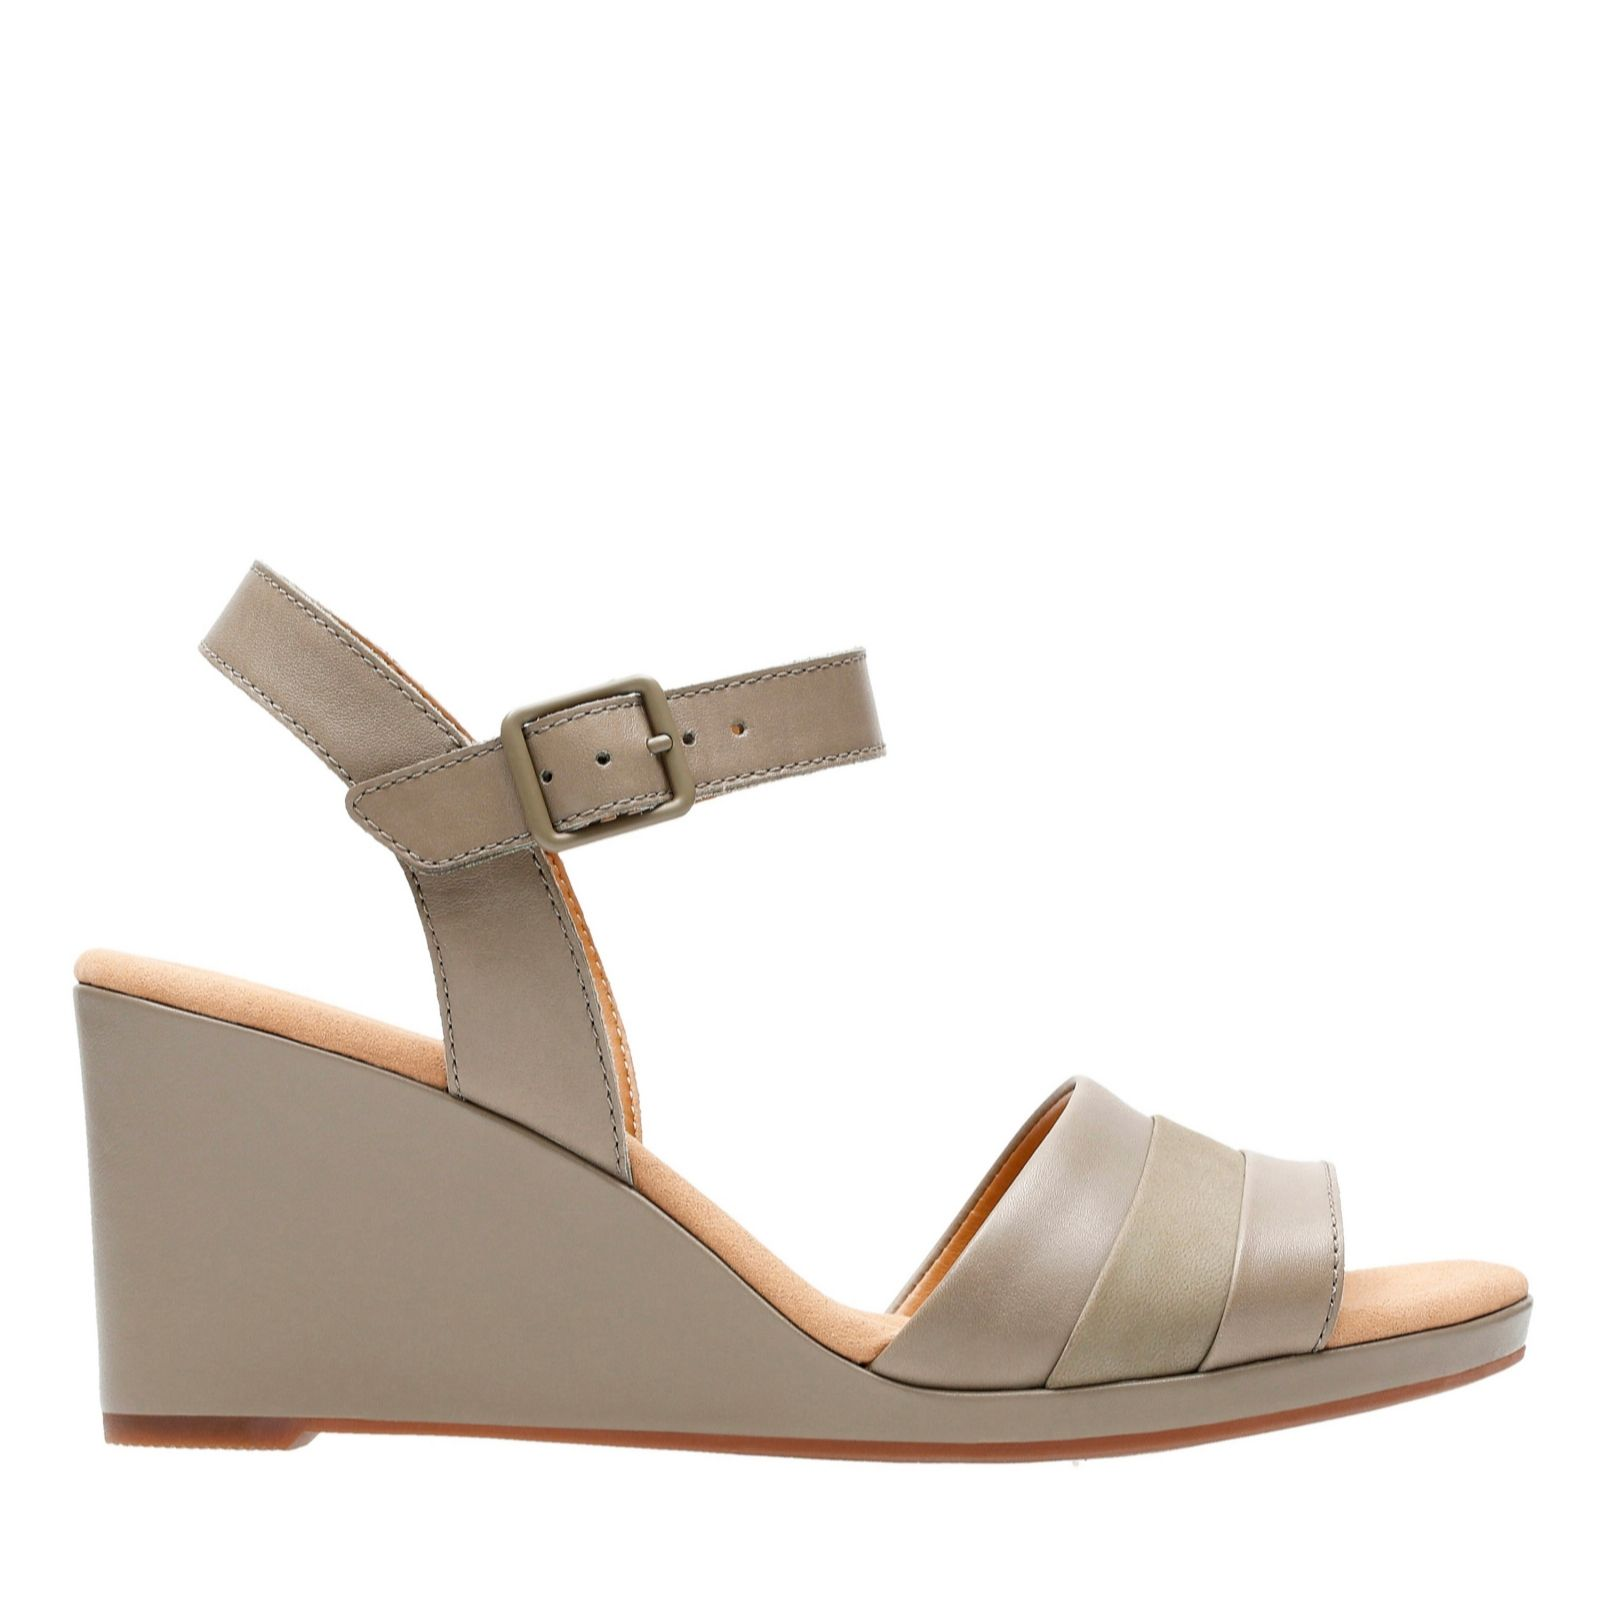 16a2410010a2 Clarks Lafley Aletha Leather Sandal with Wedge Heel Standard Fit - QVC UK